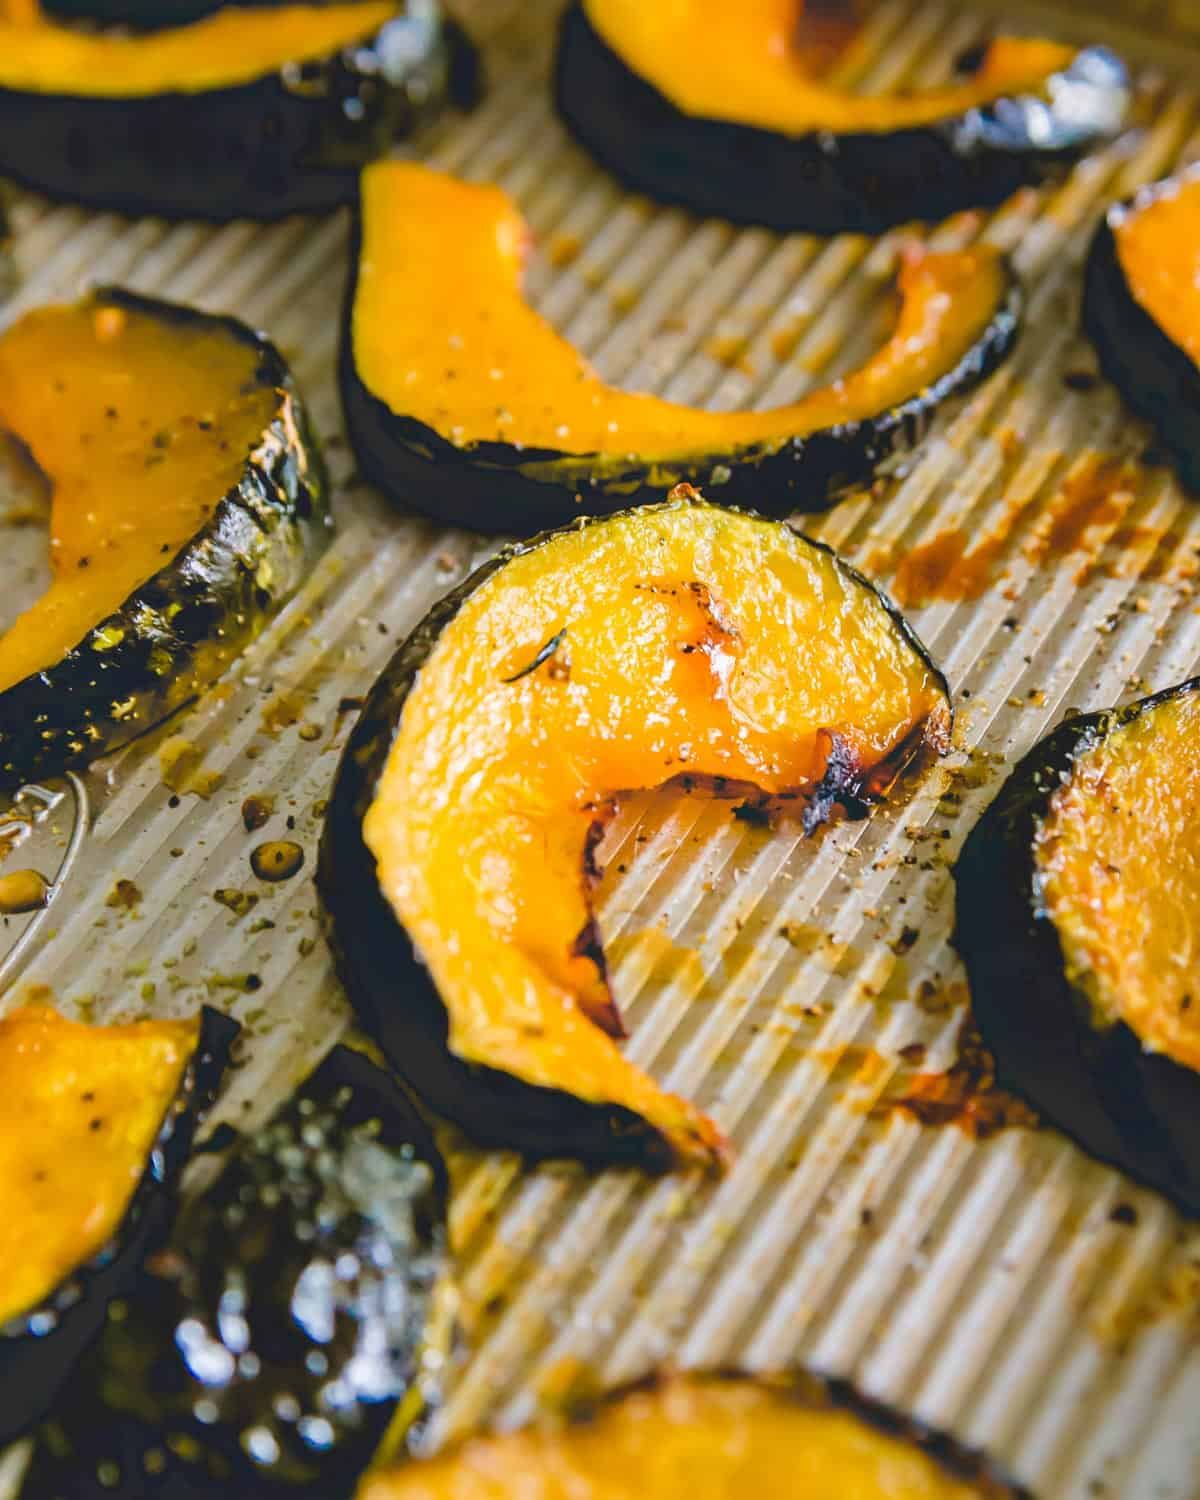 Sweet, caramelized roasted buttercup squash is a delicious fall side dish.